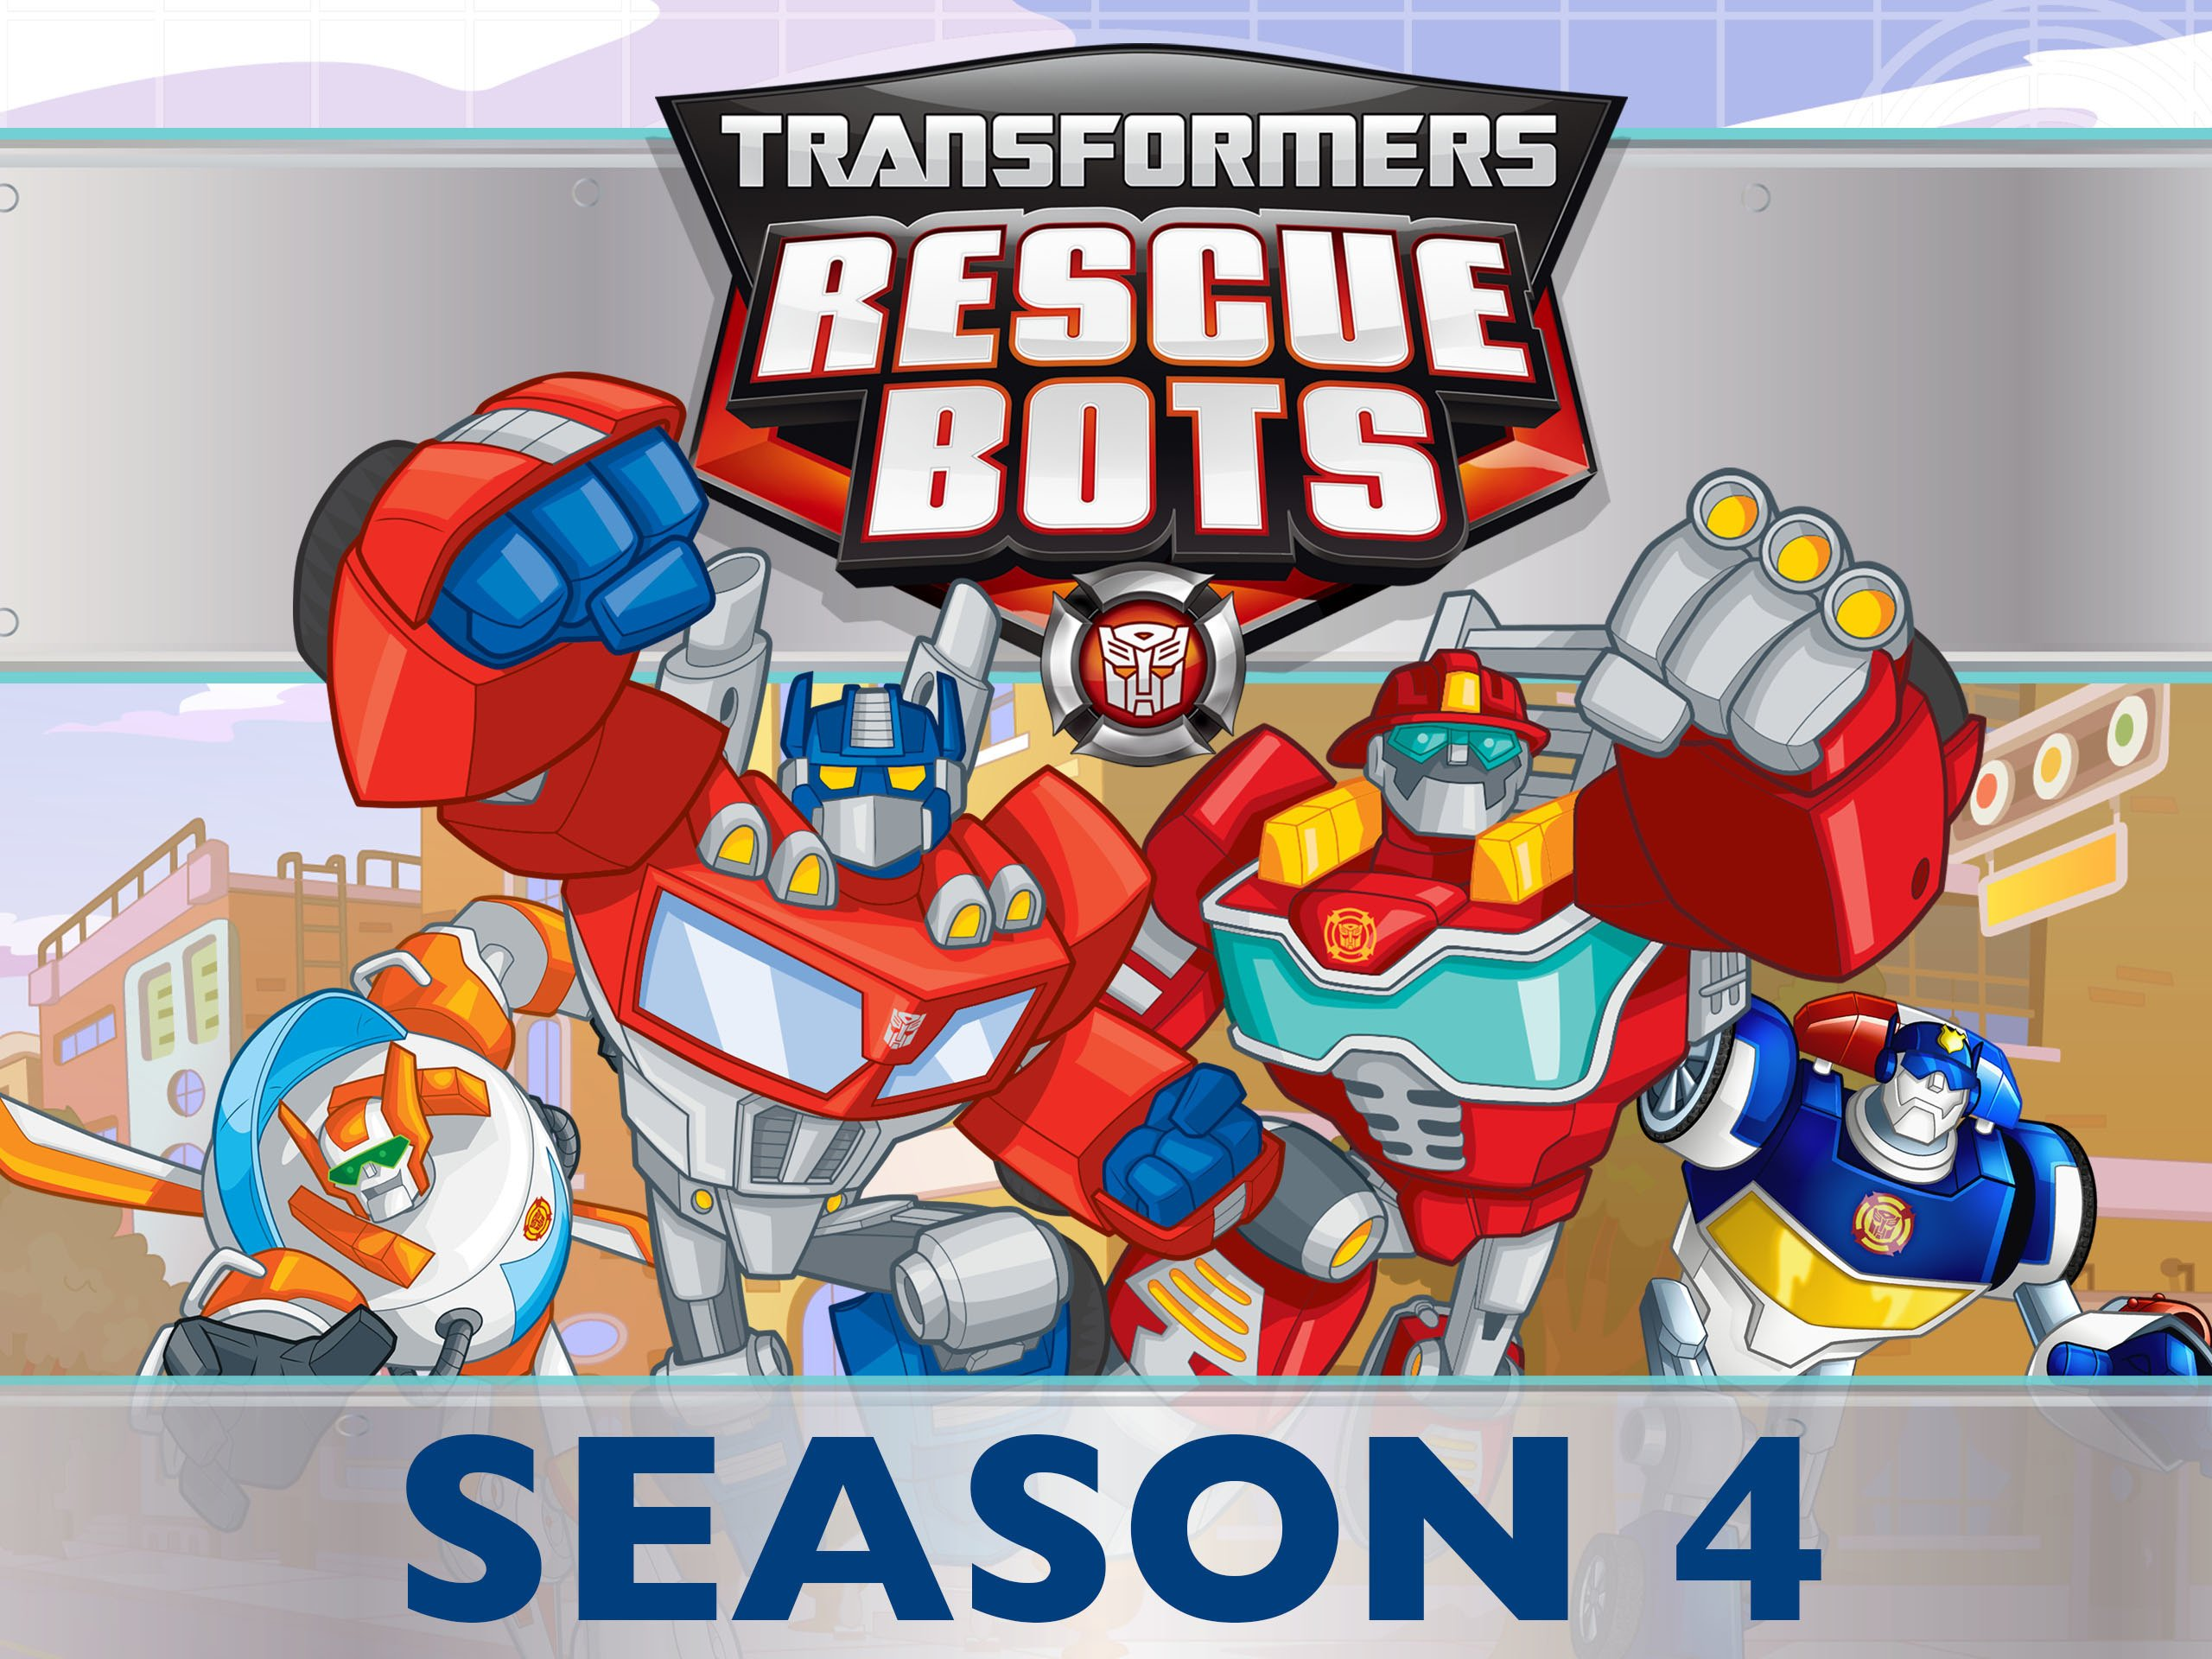 Transformers Rescue Bots Season 4 on Amazon Prime Video UK